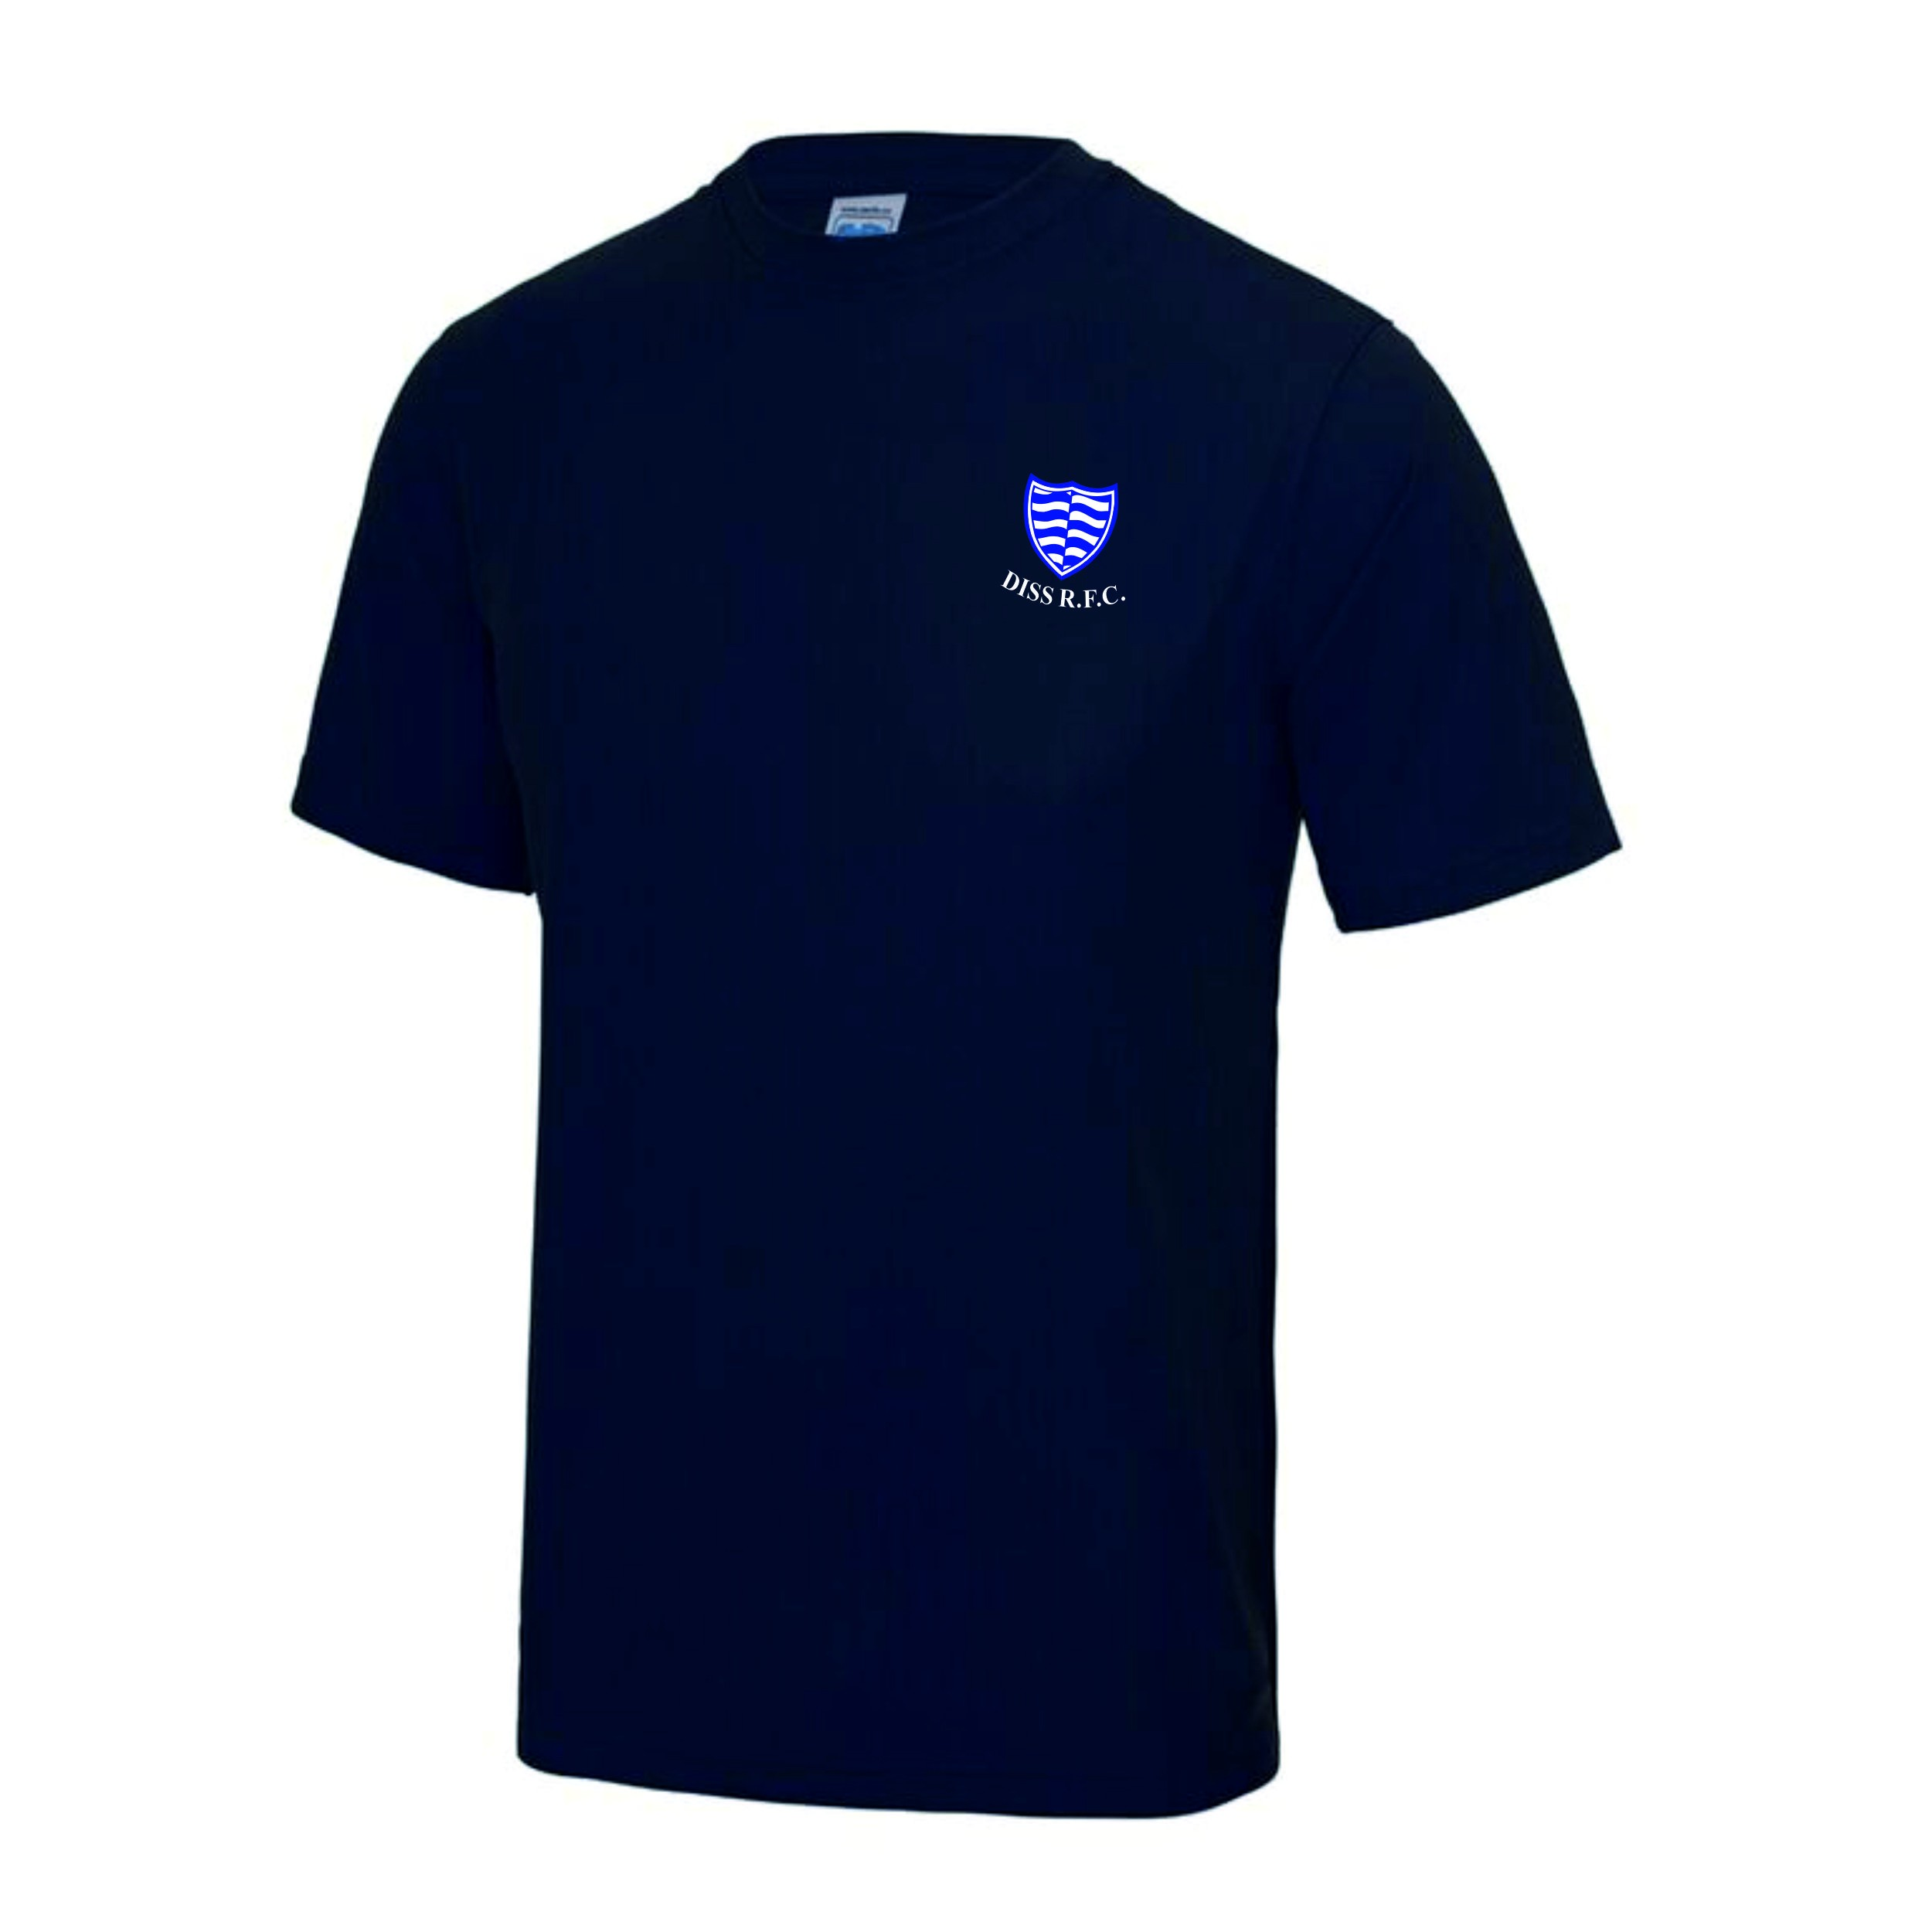 Diss RFC Junior Tech Training Tee